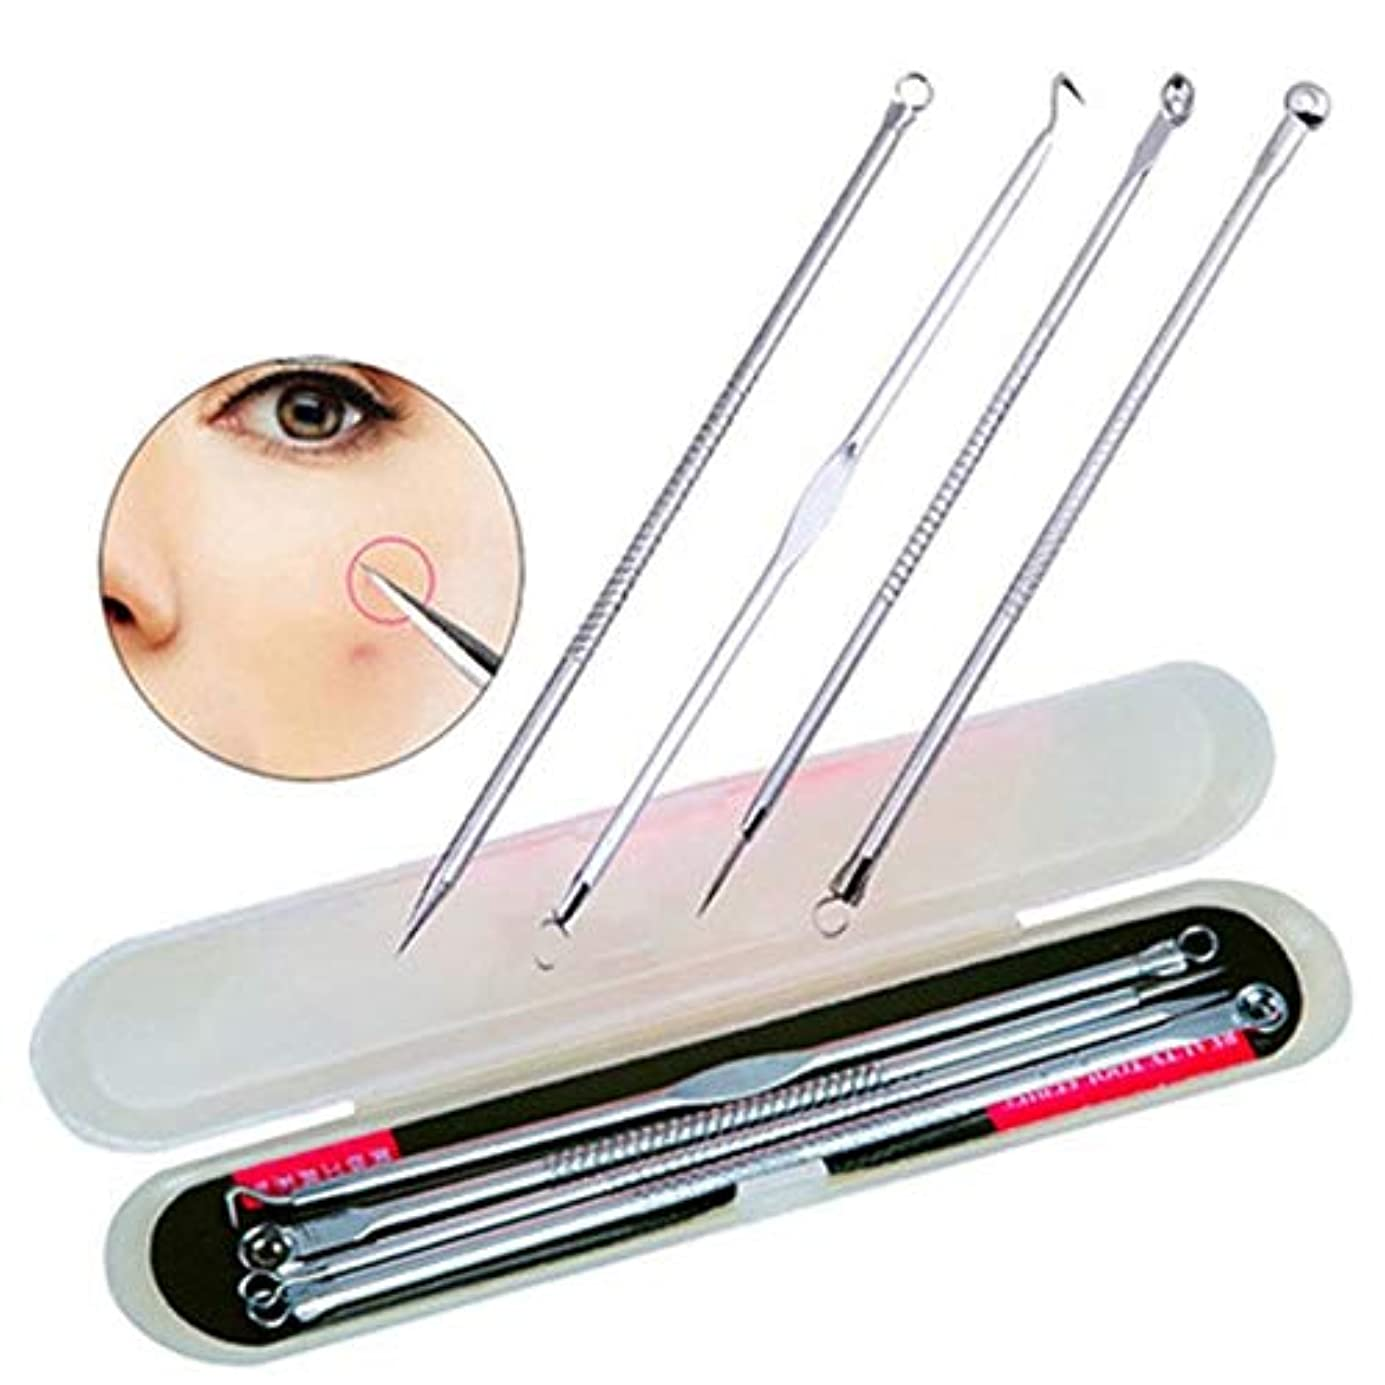 料理明らかにするあいにく4PCS Blackhead Extractor Black Dots Pimple Cleaner Acne Blemish Remover Needles Set Black Spots Pore Point Noir...